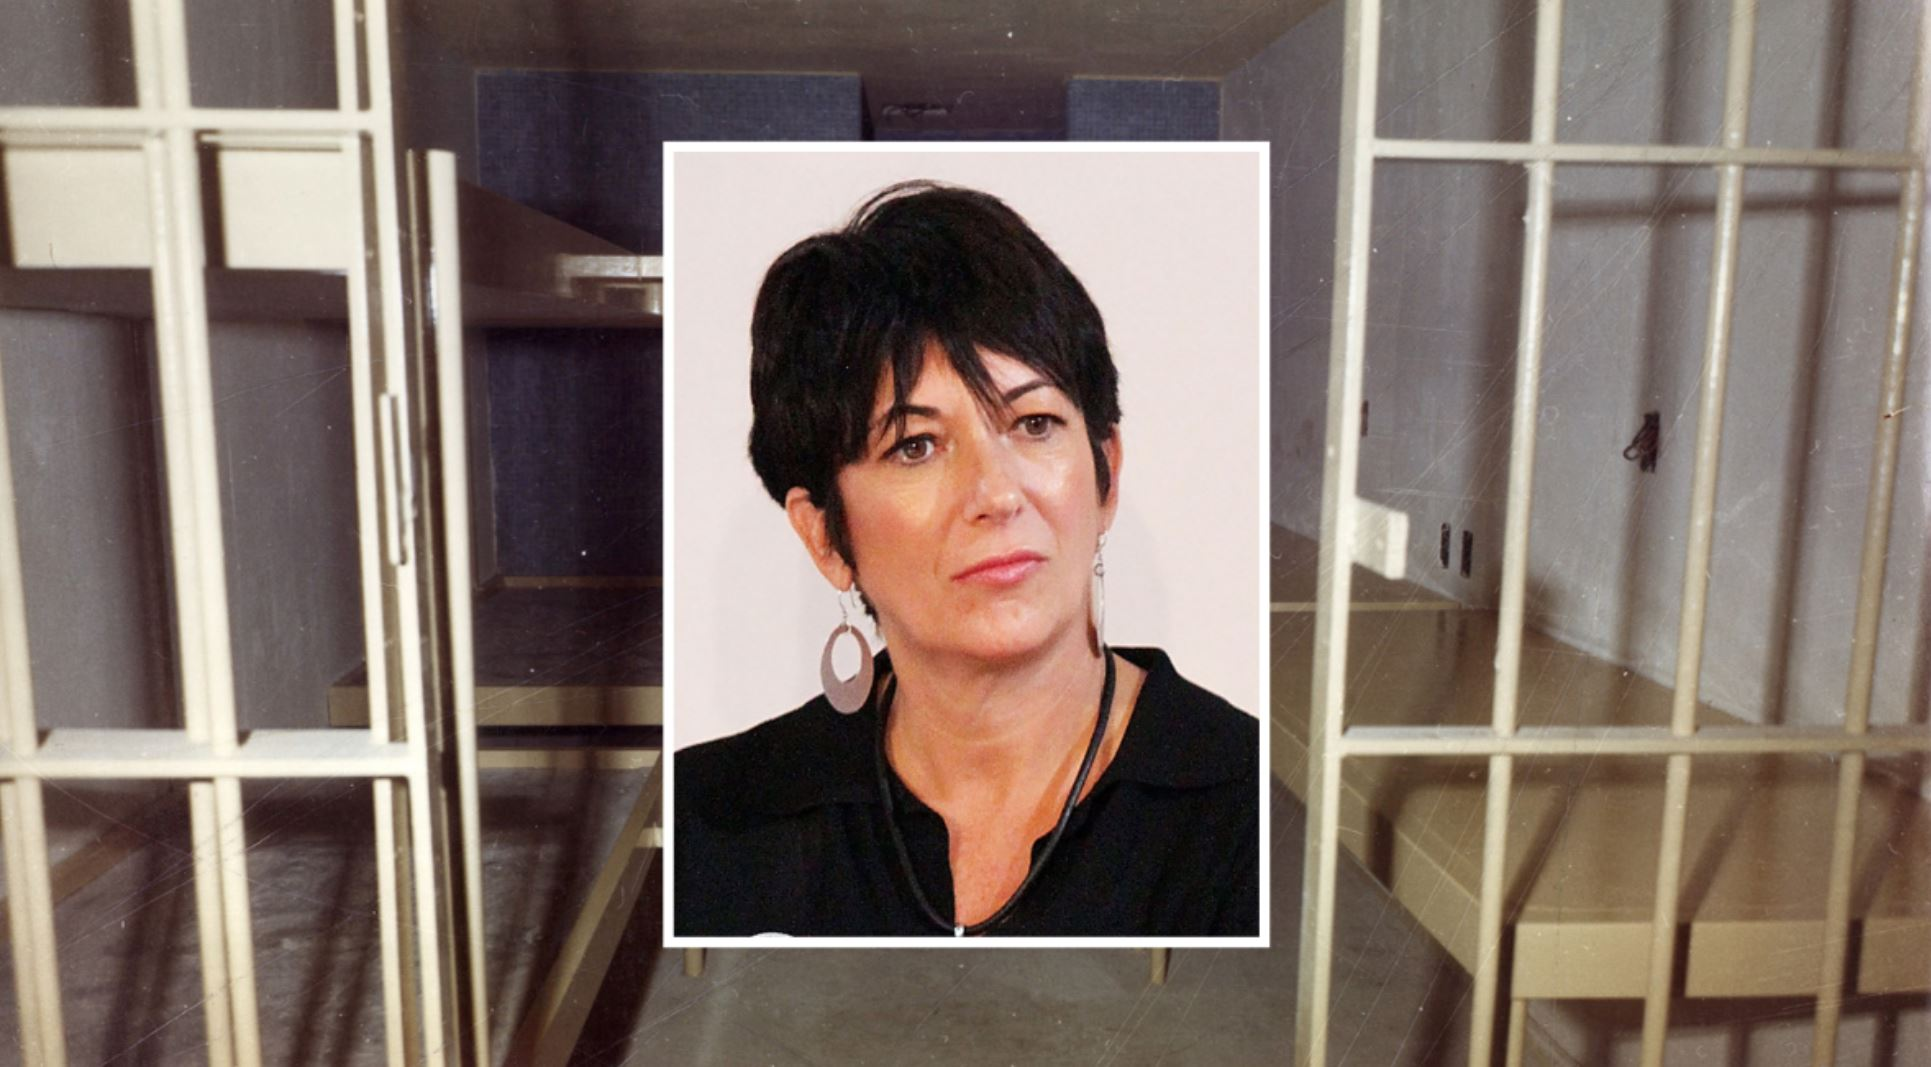 Ghislaine Maxwell to Stay in Prison Until Trial After Bail Request Denied